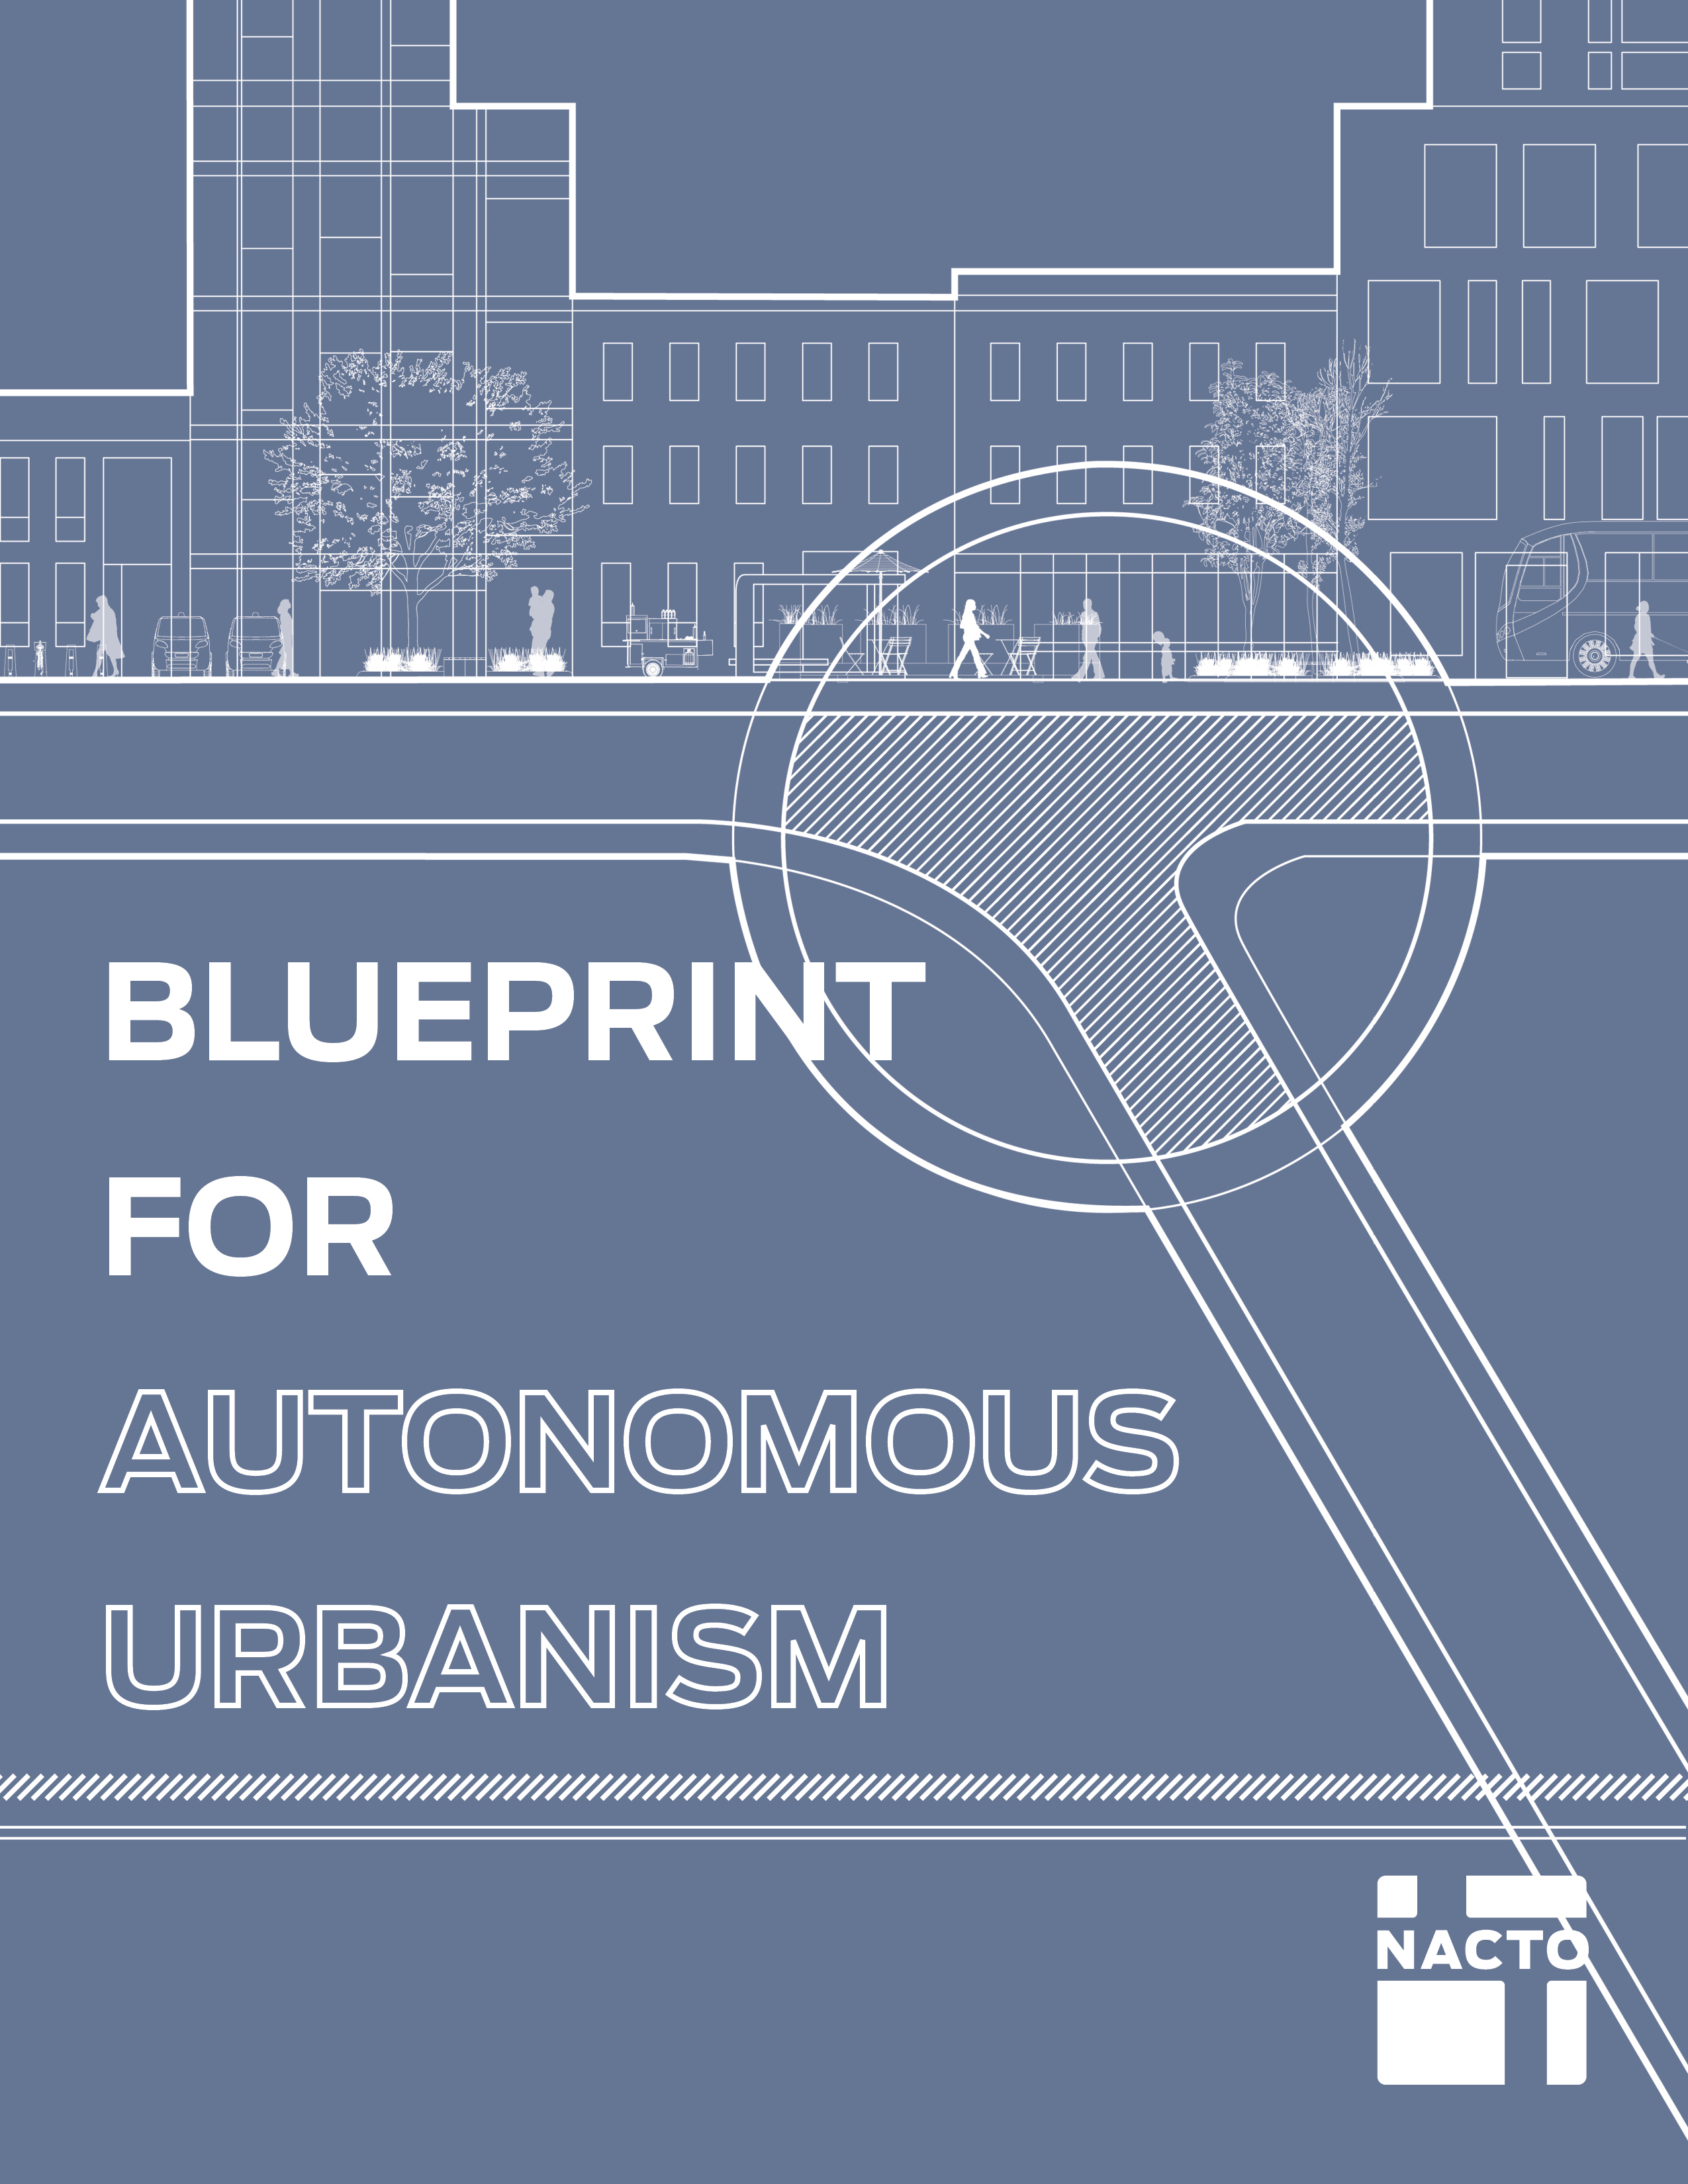 Blueprint for autonomous urbanism national association of city blueprint for autonomous urbanism national association of city transportation officials malvernweather Choice Image